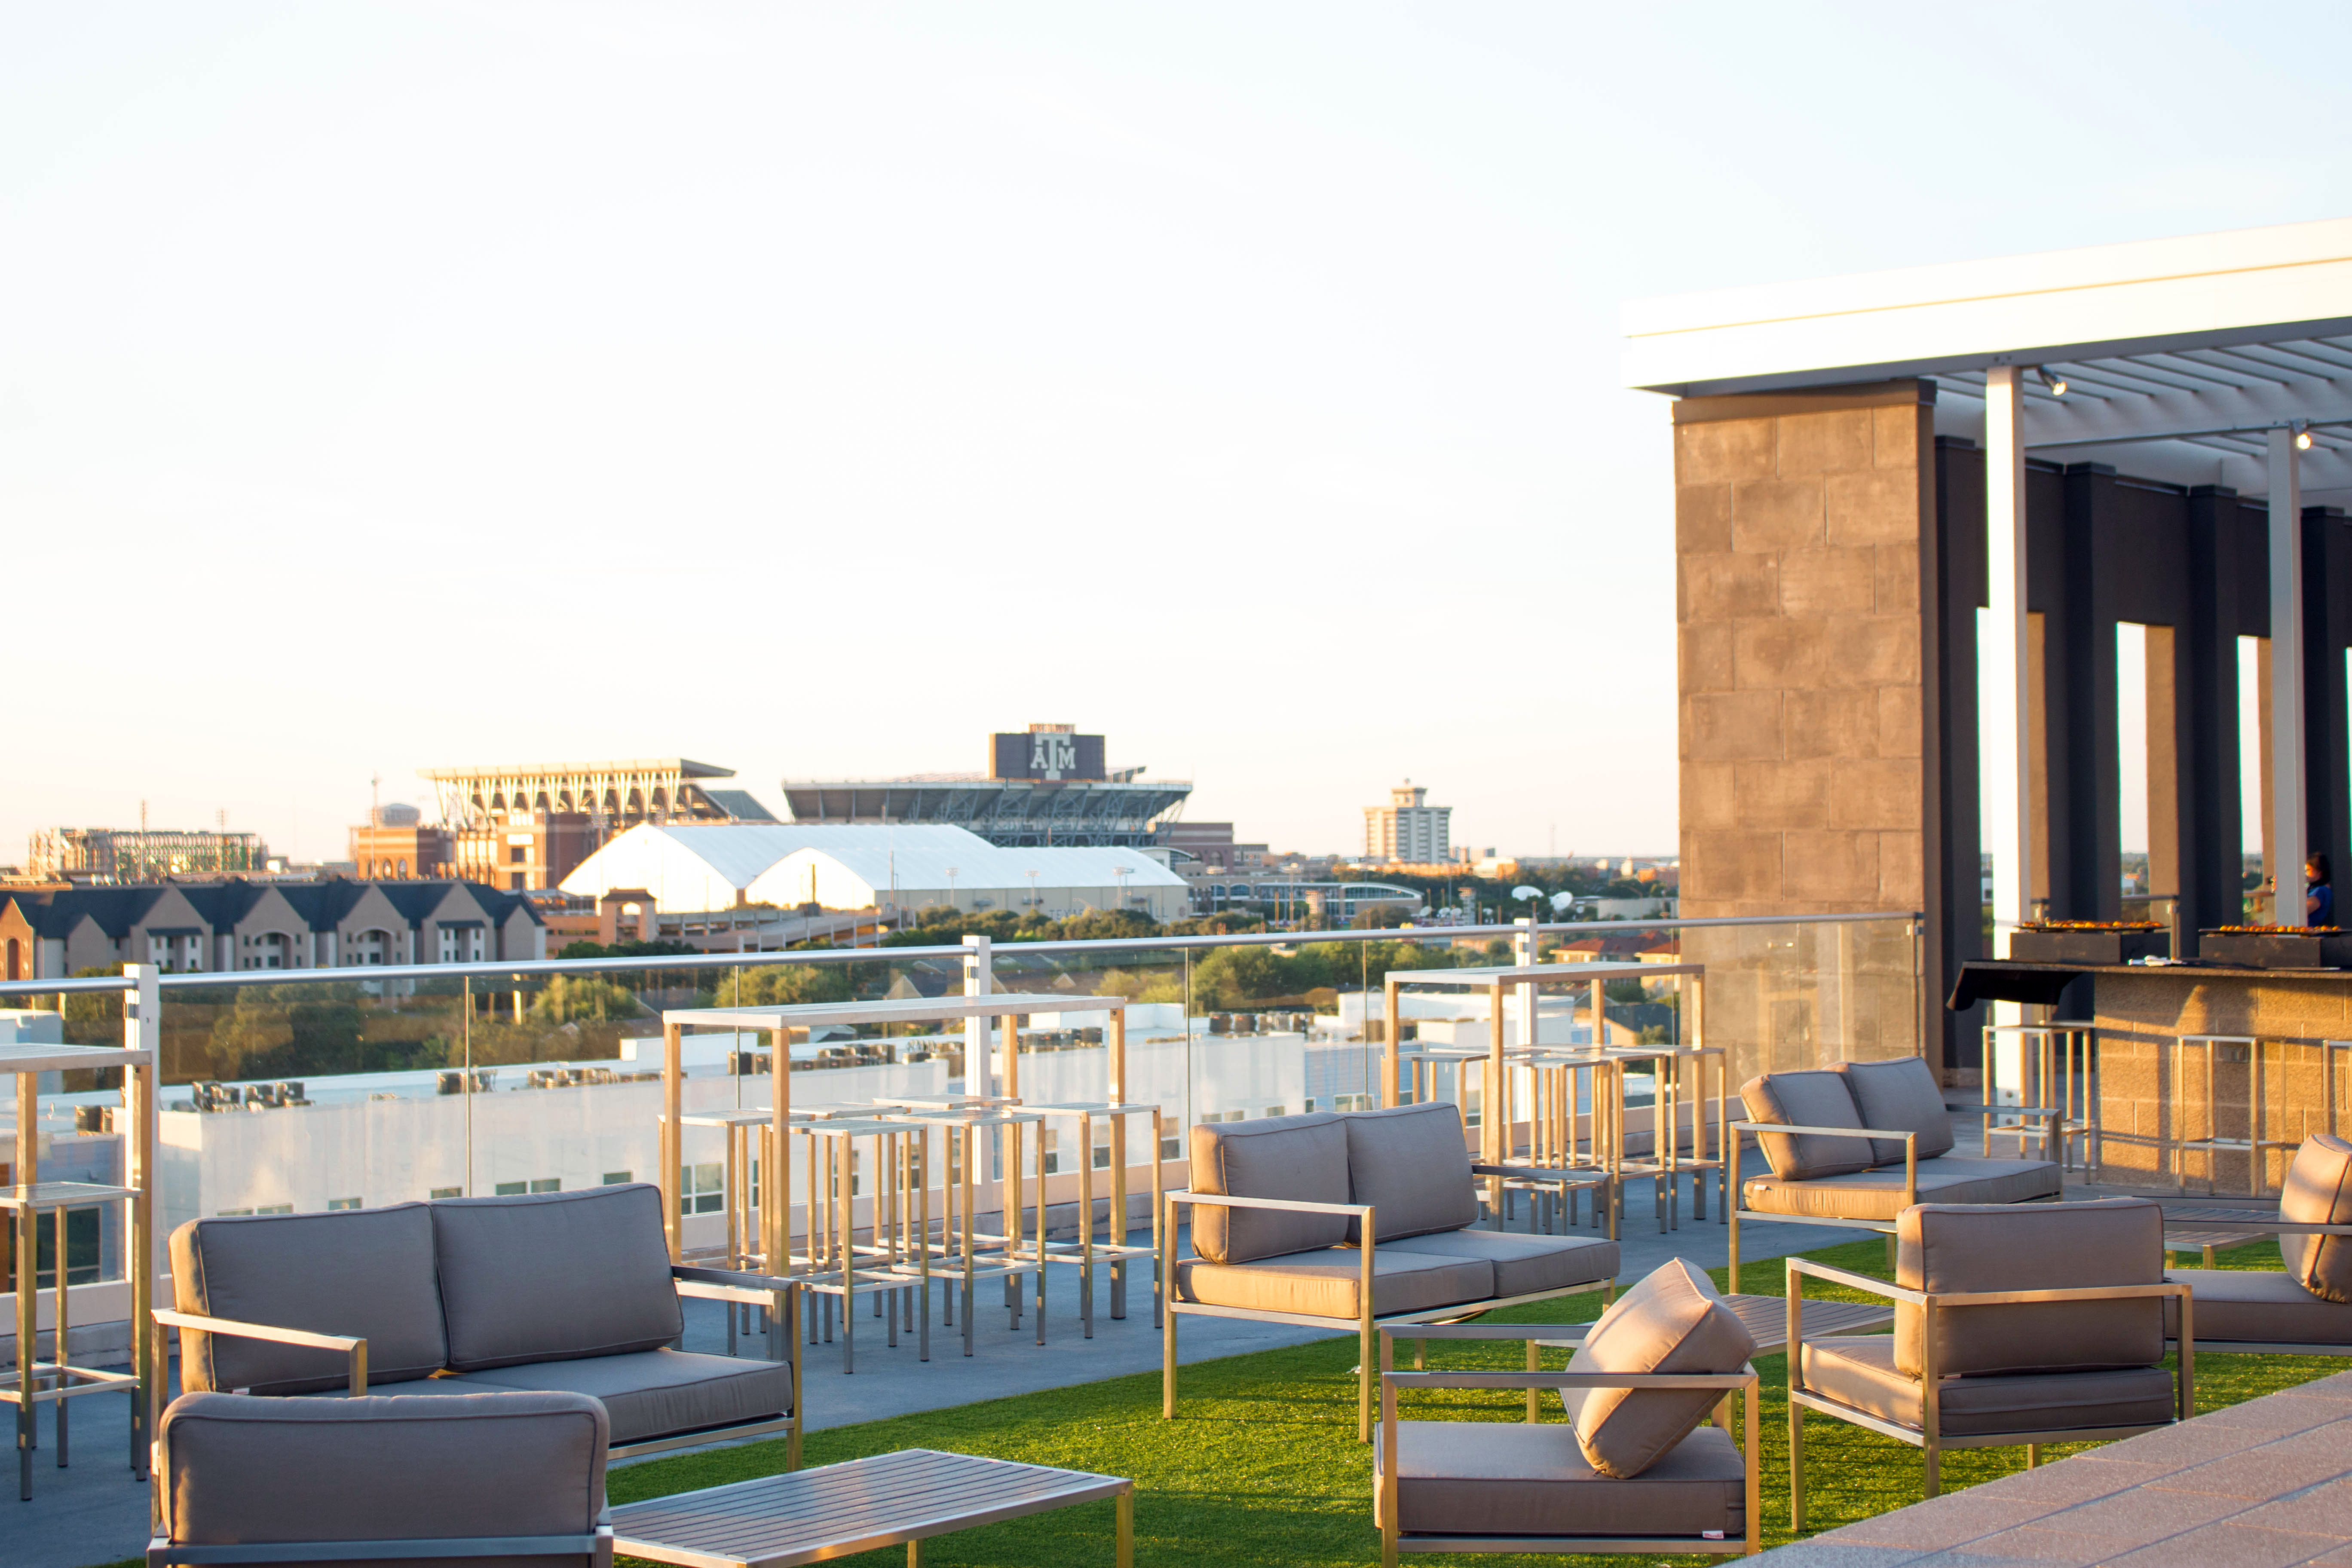 Park West Grand Opening Kyle Field Amenity Deck View